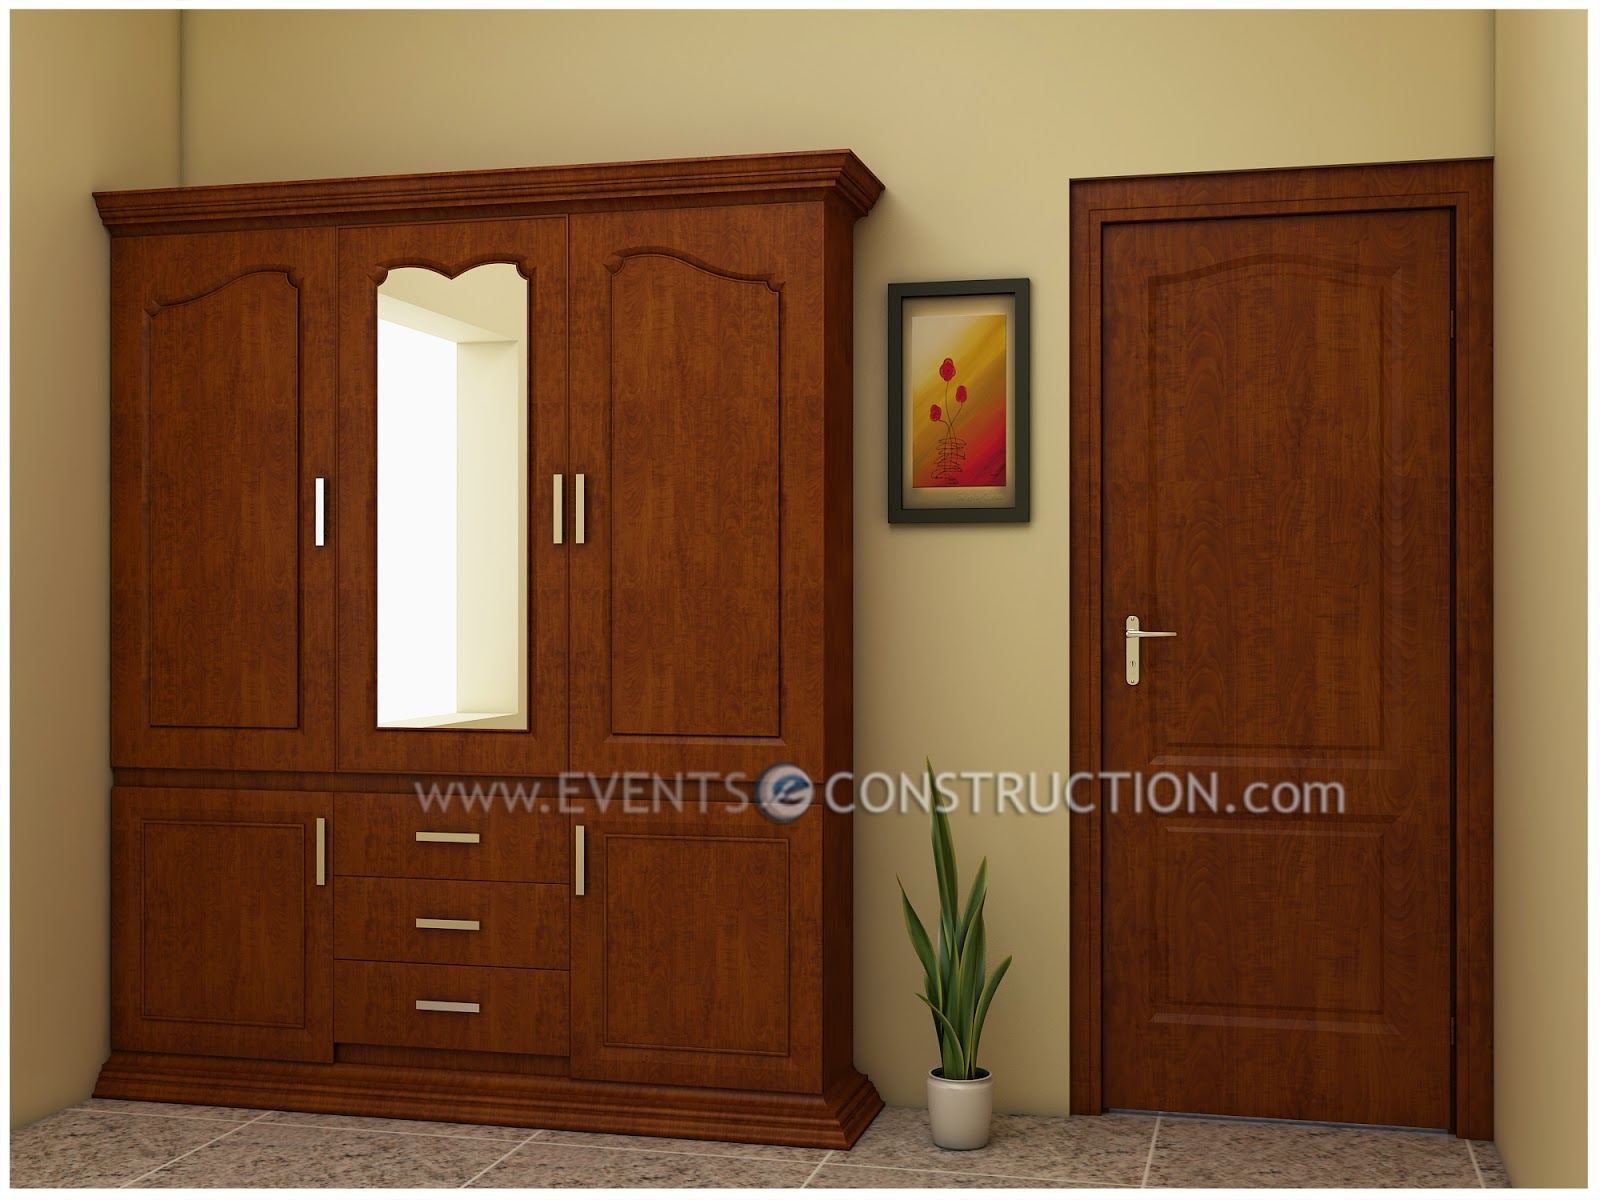 Wardrobe or dress shelf designed in wood for kerala home.